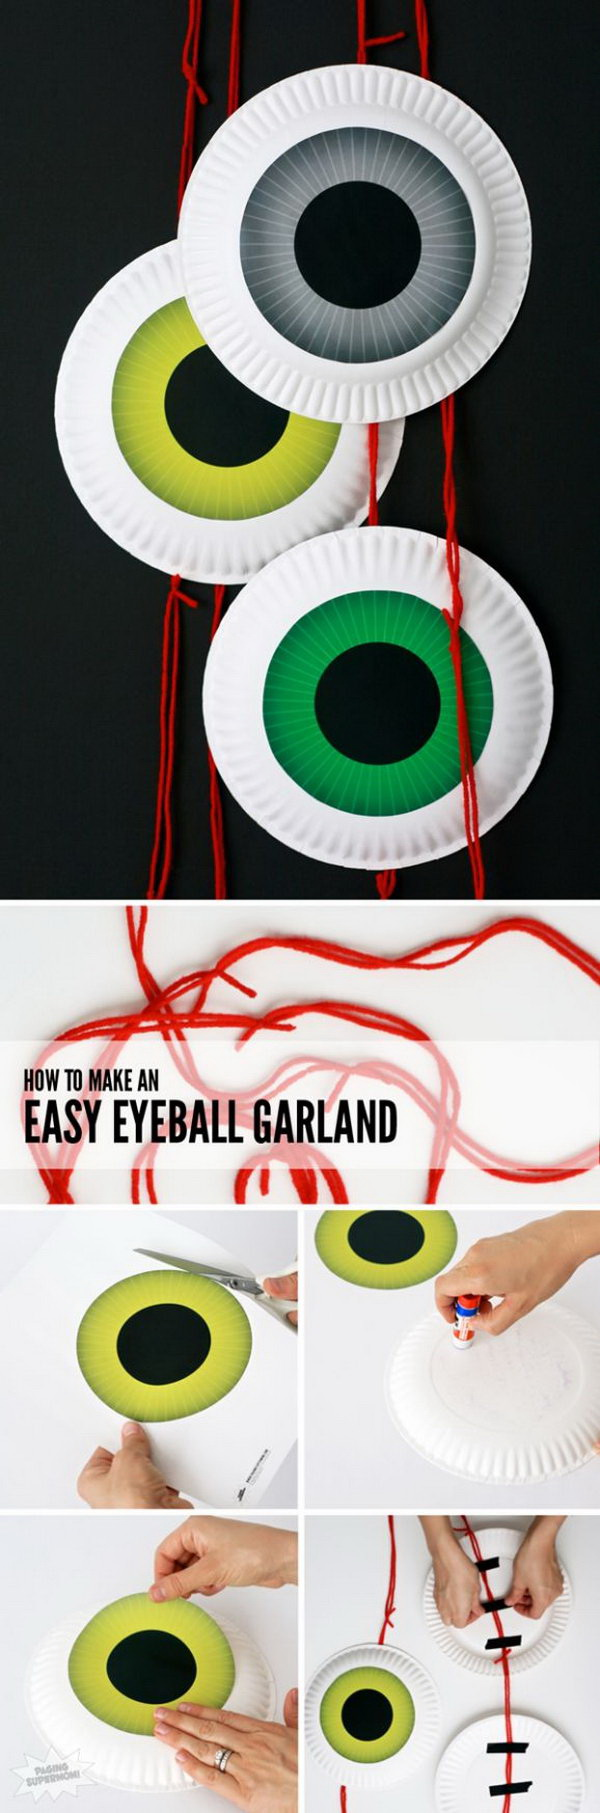 Cute DIY Halloween Eyeball Door Garland. This eyeball door garland is fun for the front door decoration during this Halloween season! Fun and incredibly easy to make with our tutorial.